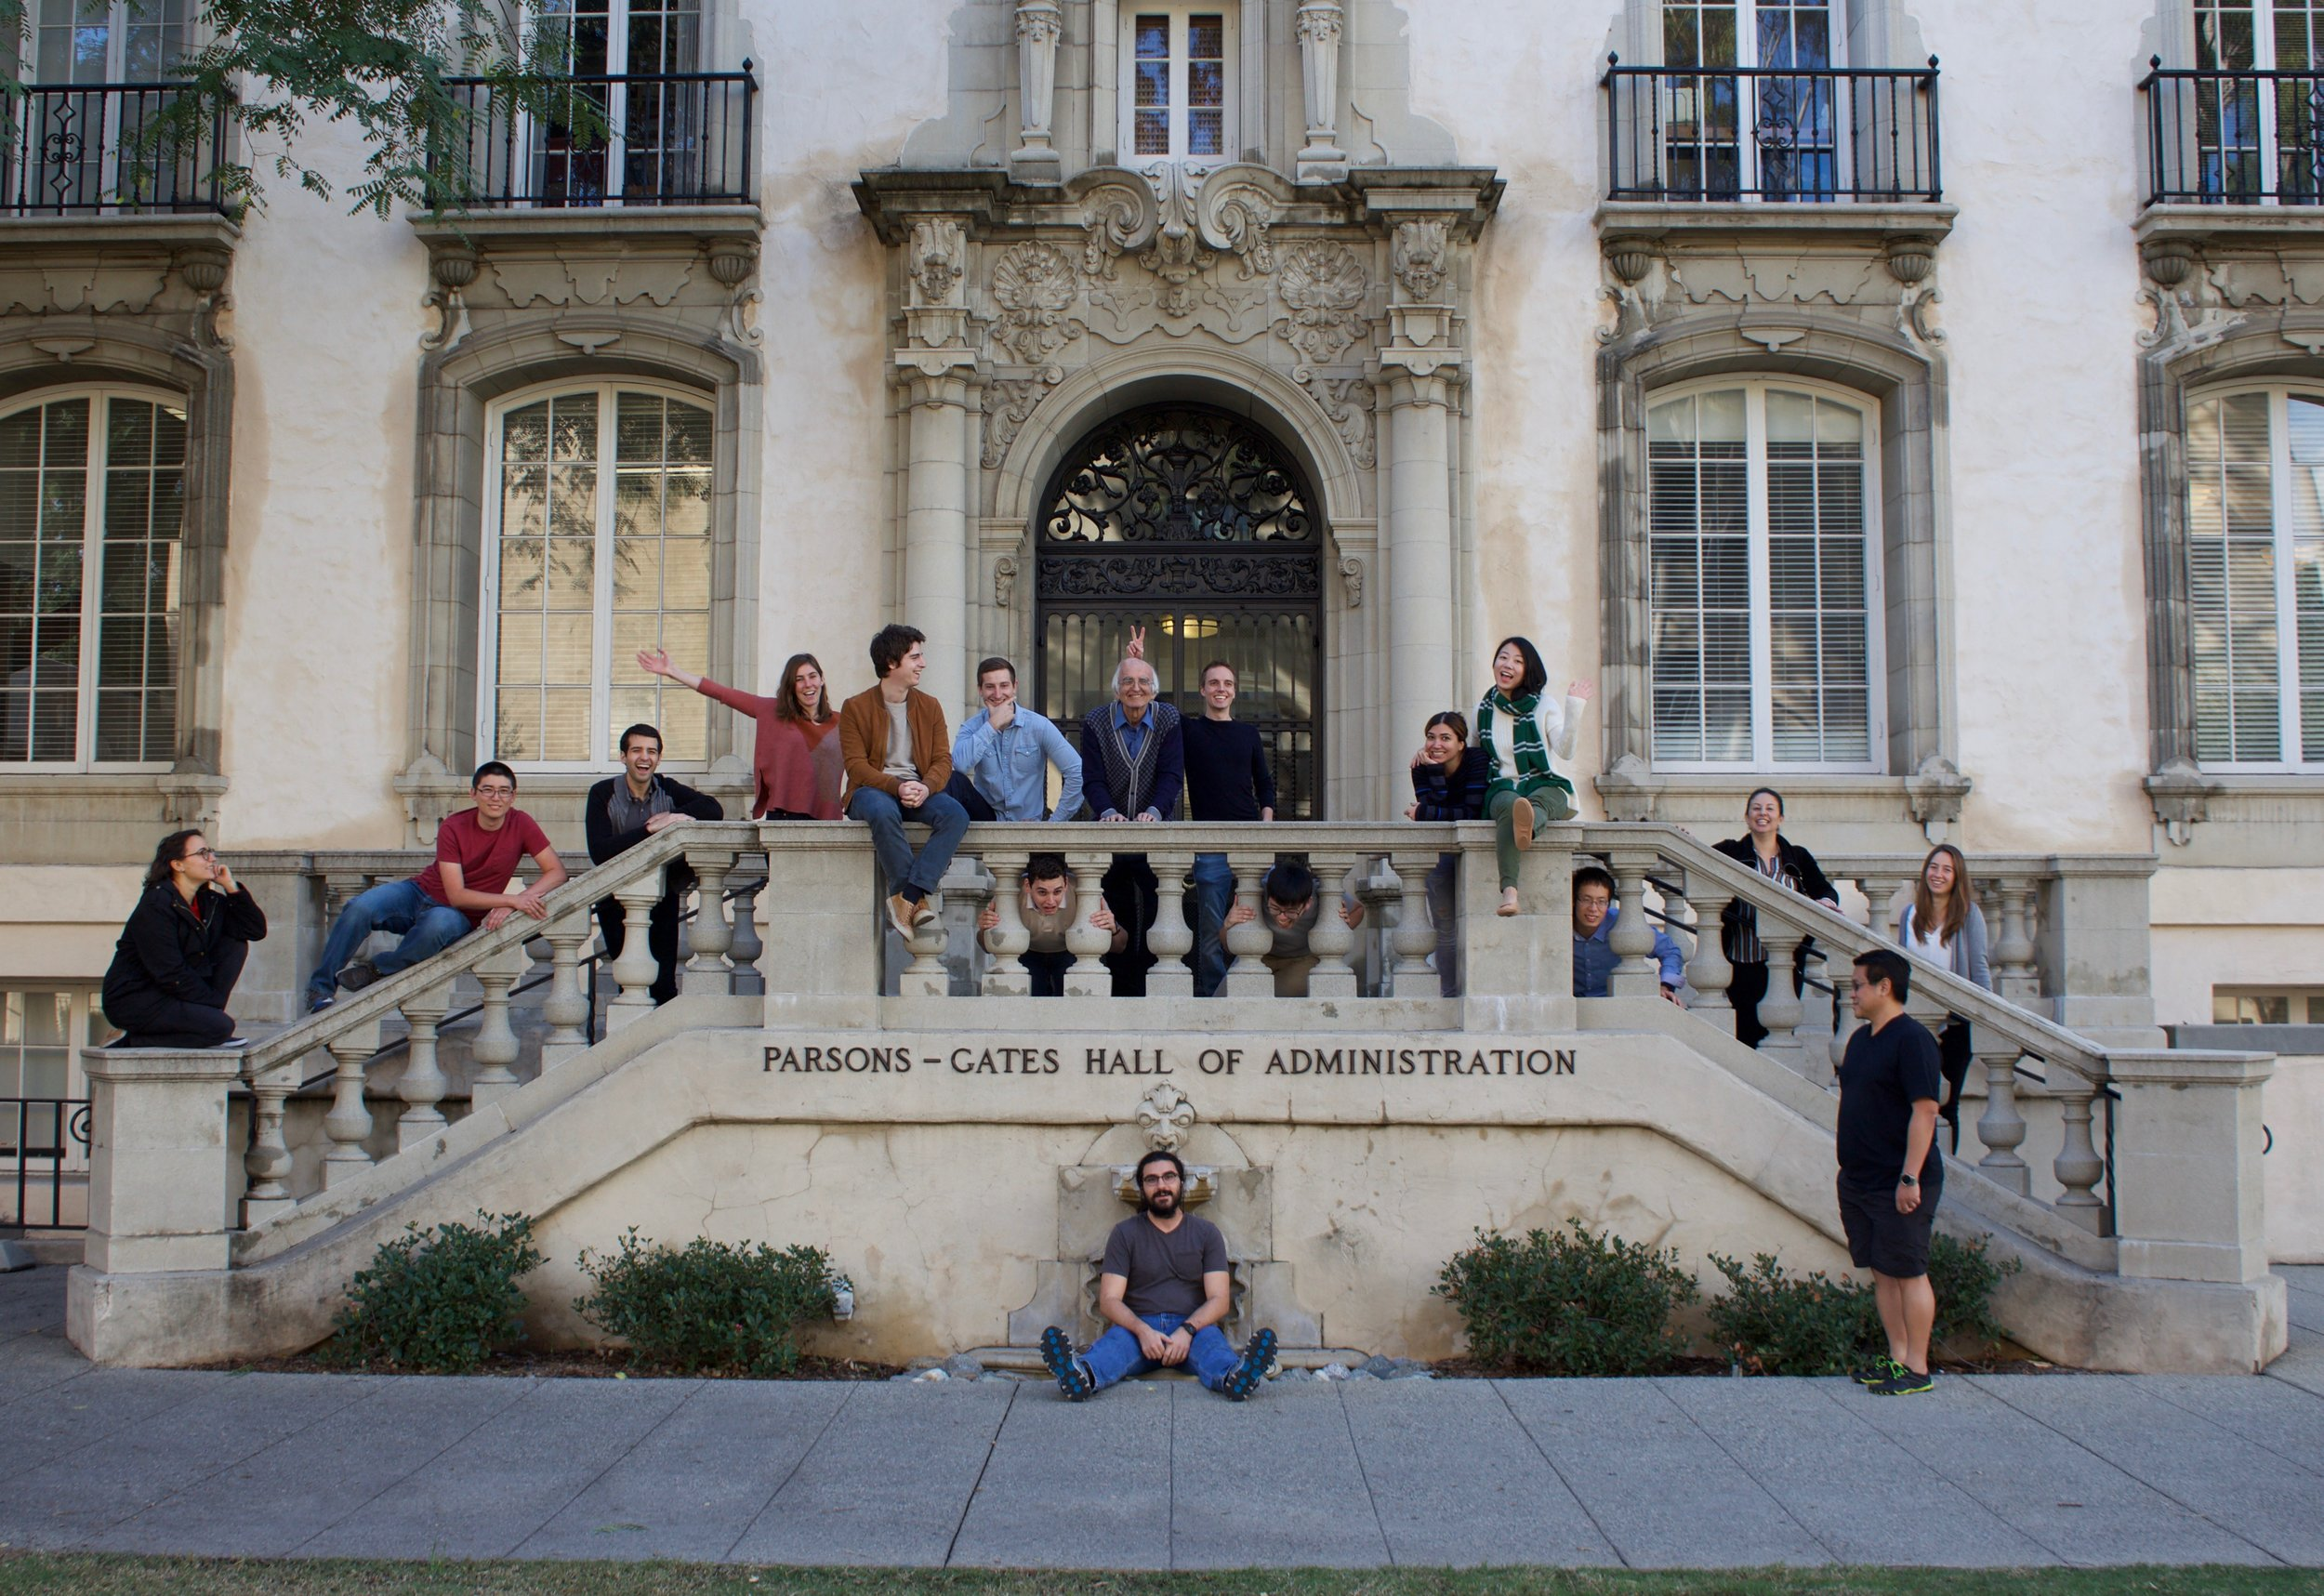 In front of Caltech's Hall of Administration!  Sitting on the floor: Manu. Staring at Manu: David J.Head between the balusters (left to right): Chris D., Chris R., and Cong. On the stairs (left to right): Morgane, Nathan, David M., Stephanie, Raimondo,Marcel, Masoud, Damian,Azin, Jinglin,Martha, Cecilia.  Photo credit: Kali Dougherty from Kali Jeane Photography.